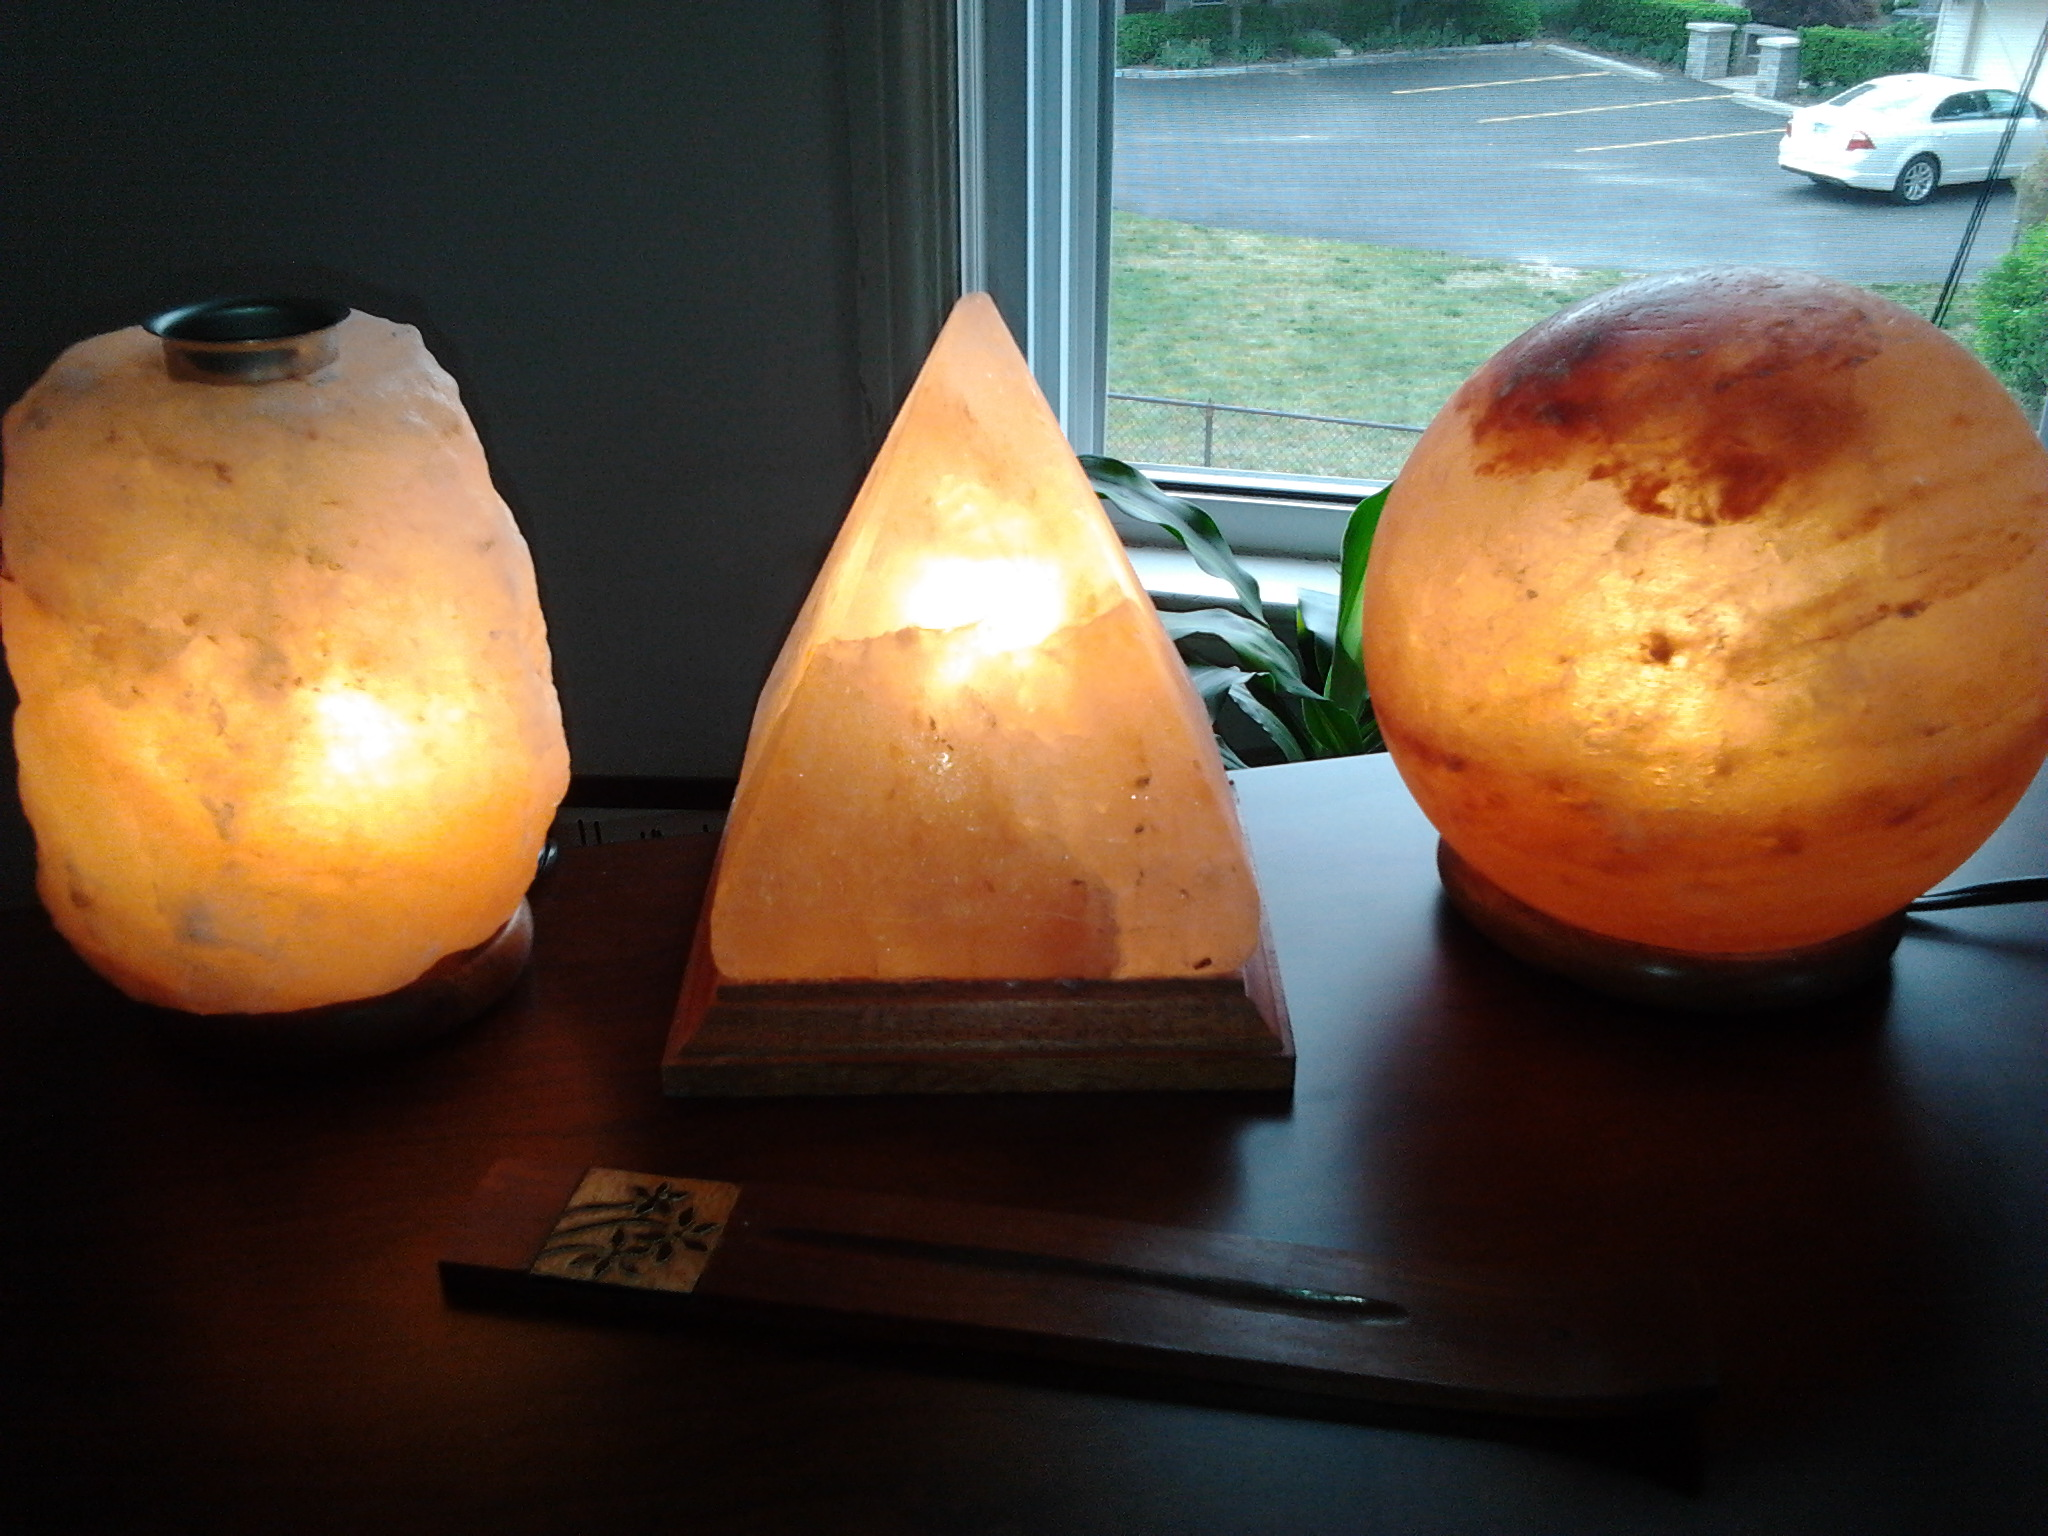 Salt Lamp Sizes For Rooms : Is The Lighting In Your Home Affecting Your Sleep?